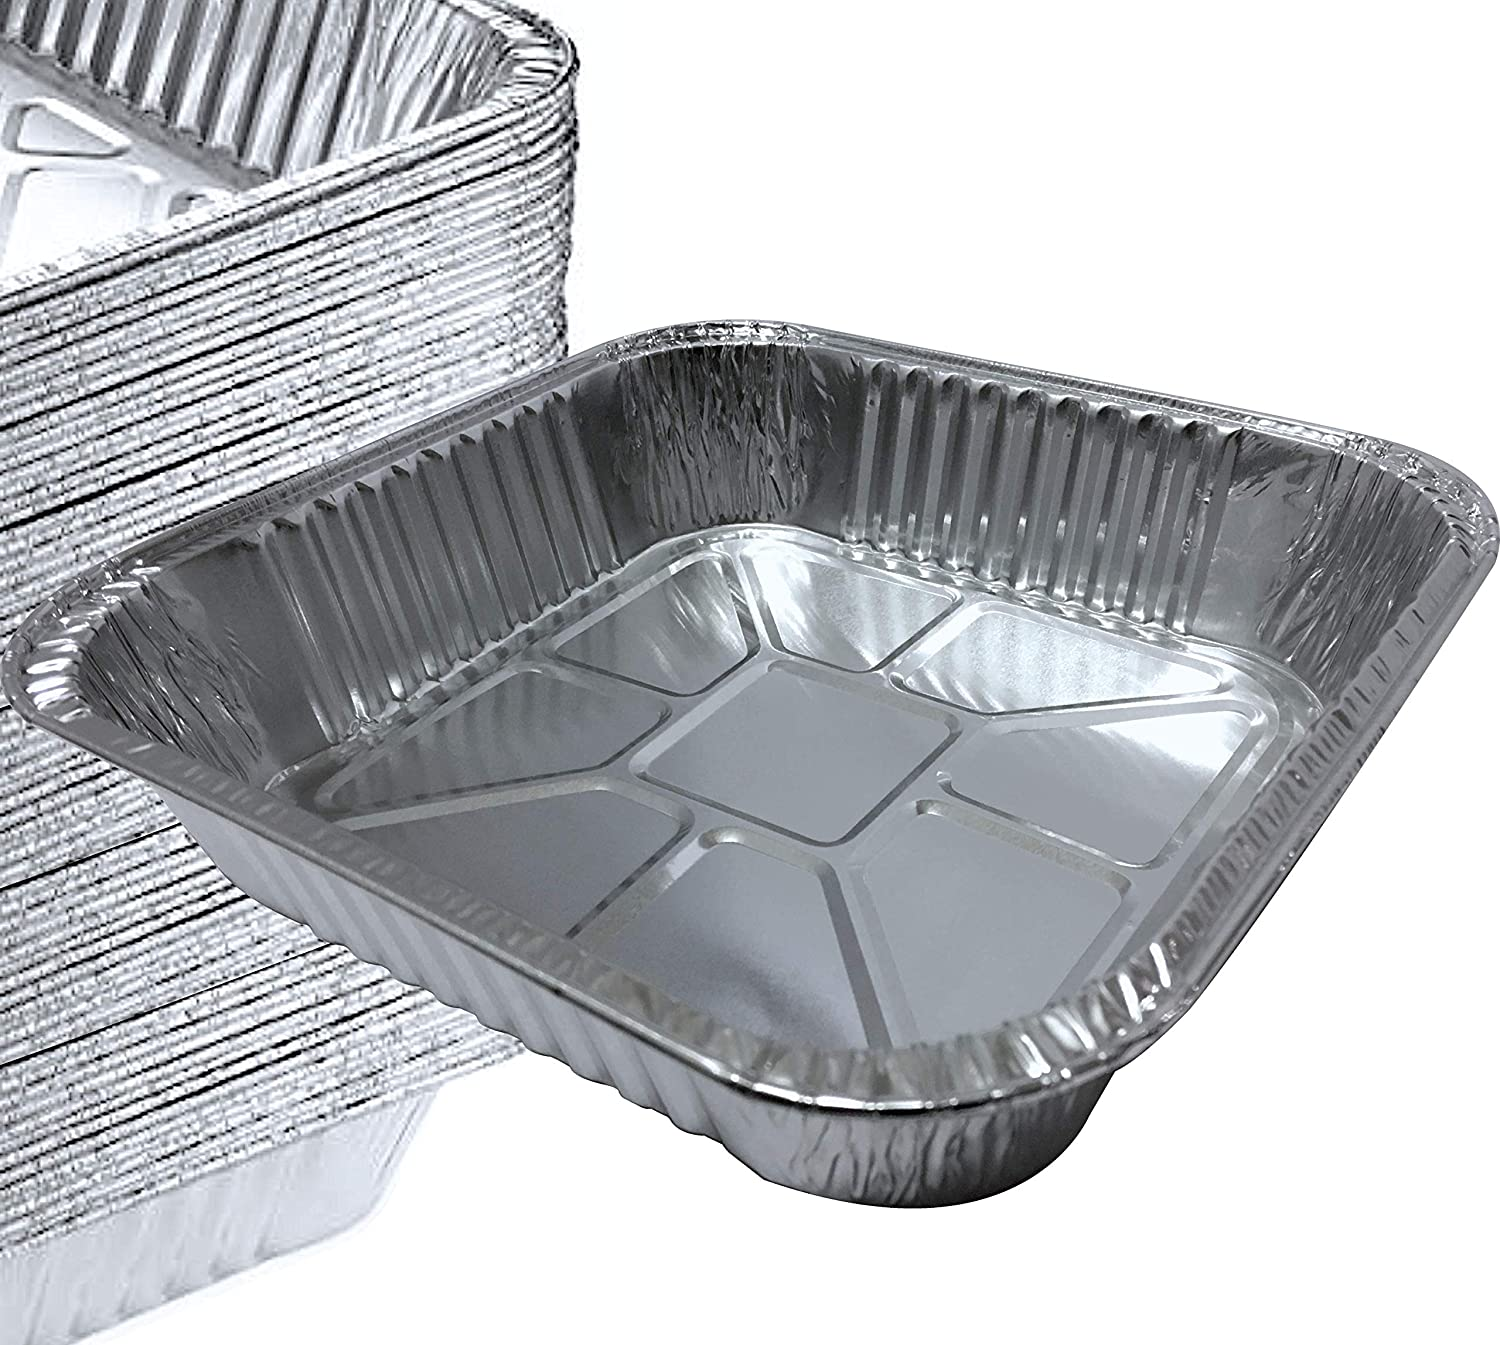 "55 PACK - 8"" x 8"" Square Pans I Deli Brownie Pan I Square Baking Pans I Cake Pans I Aluminum Brownie Pan I Square Foil Pans for Baking, Roasting, Broiling & Cooking. Ideal for Tasty Brownies & Cakes"